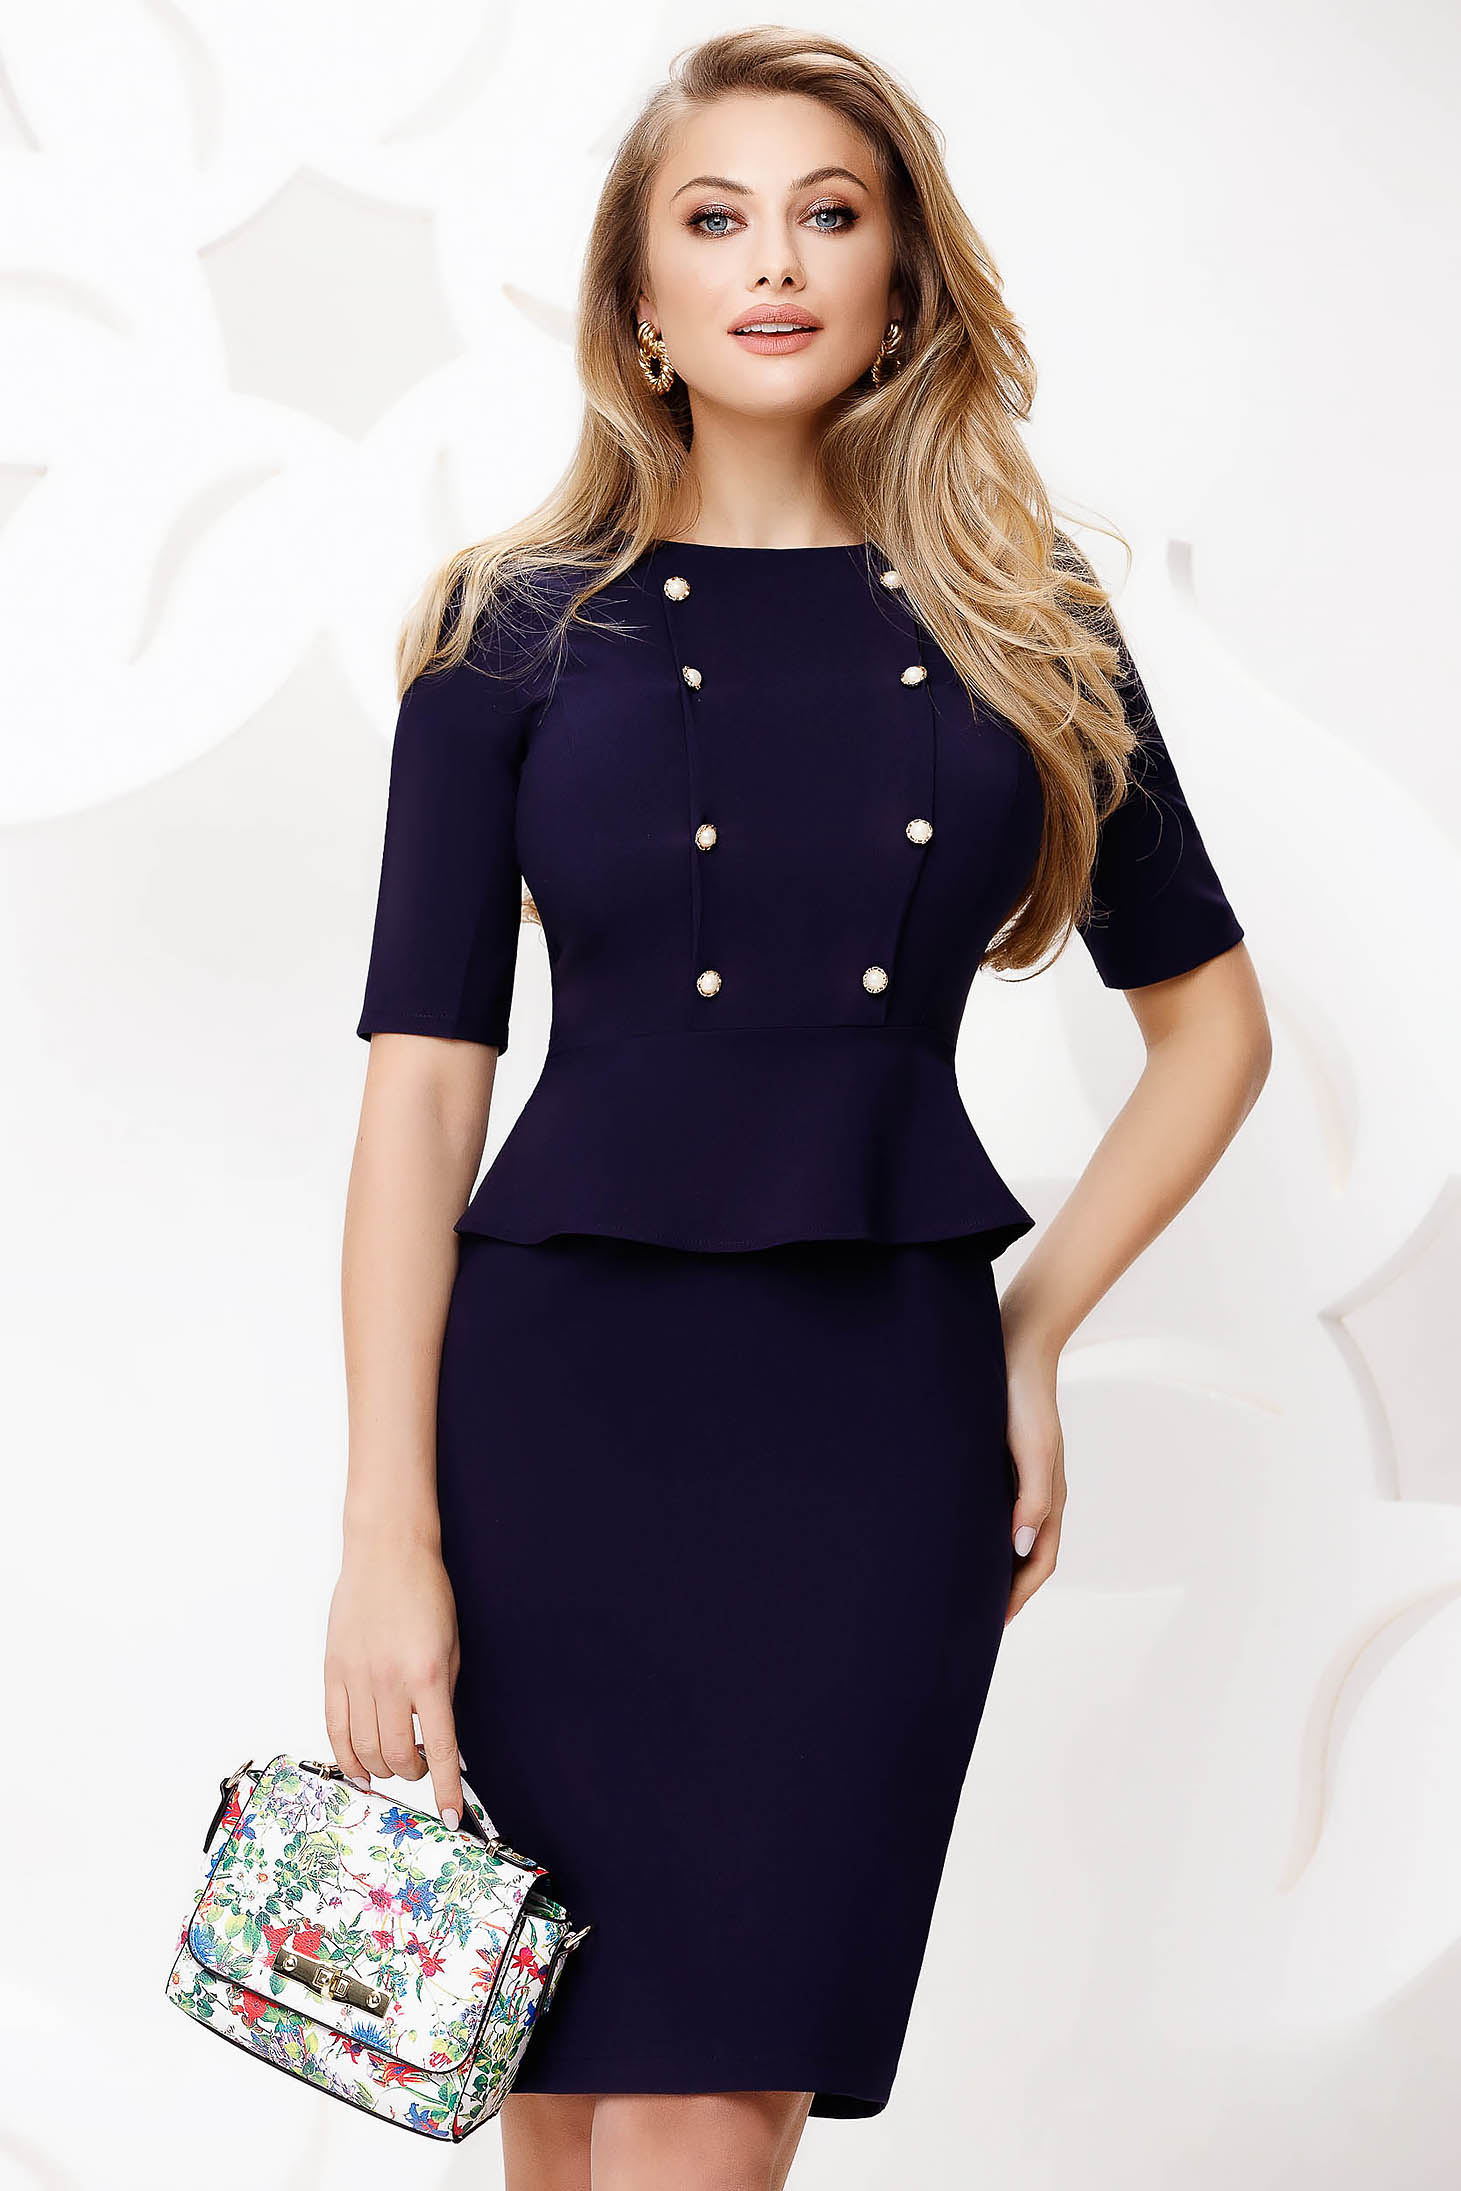 Darkblue dress pencil midi office with button accessories